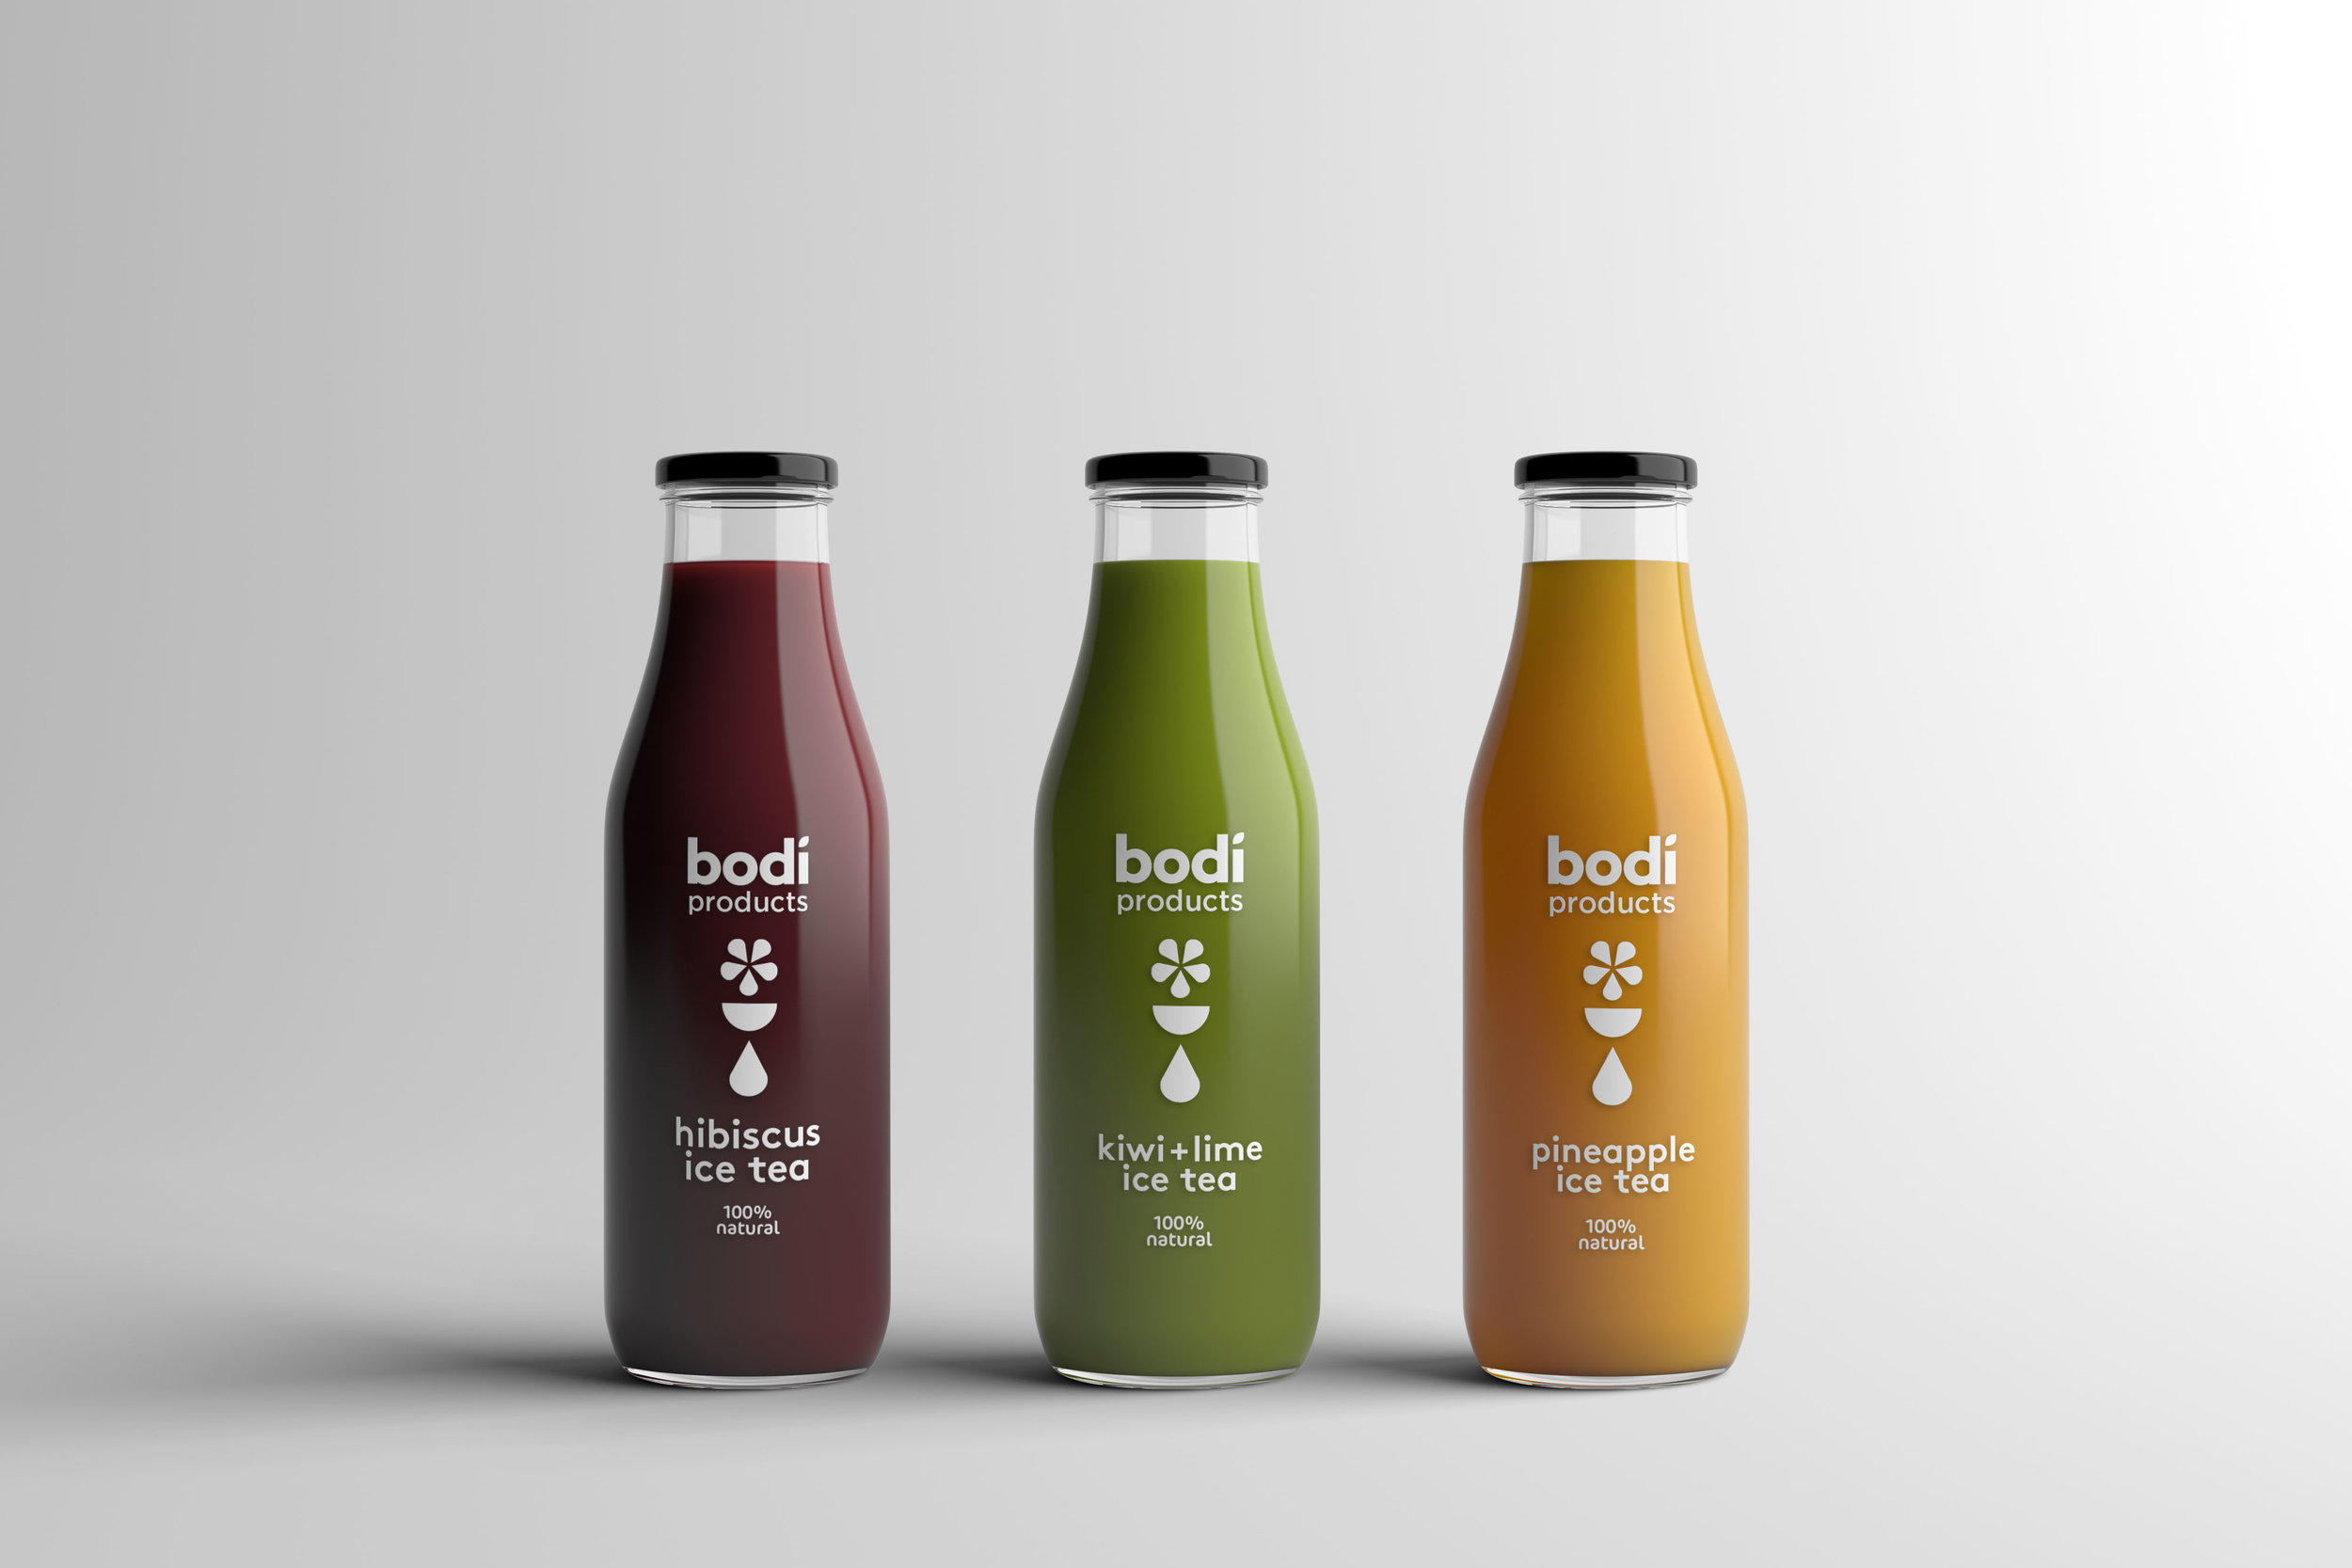 bodi products packaging design and branding